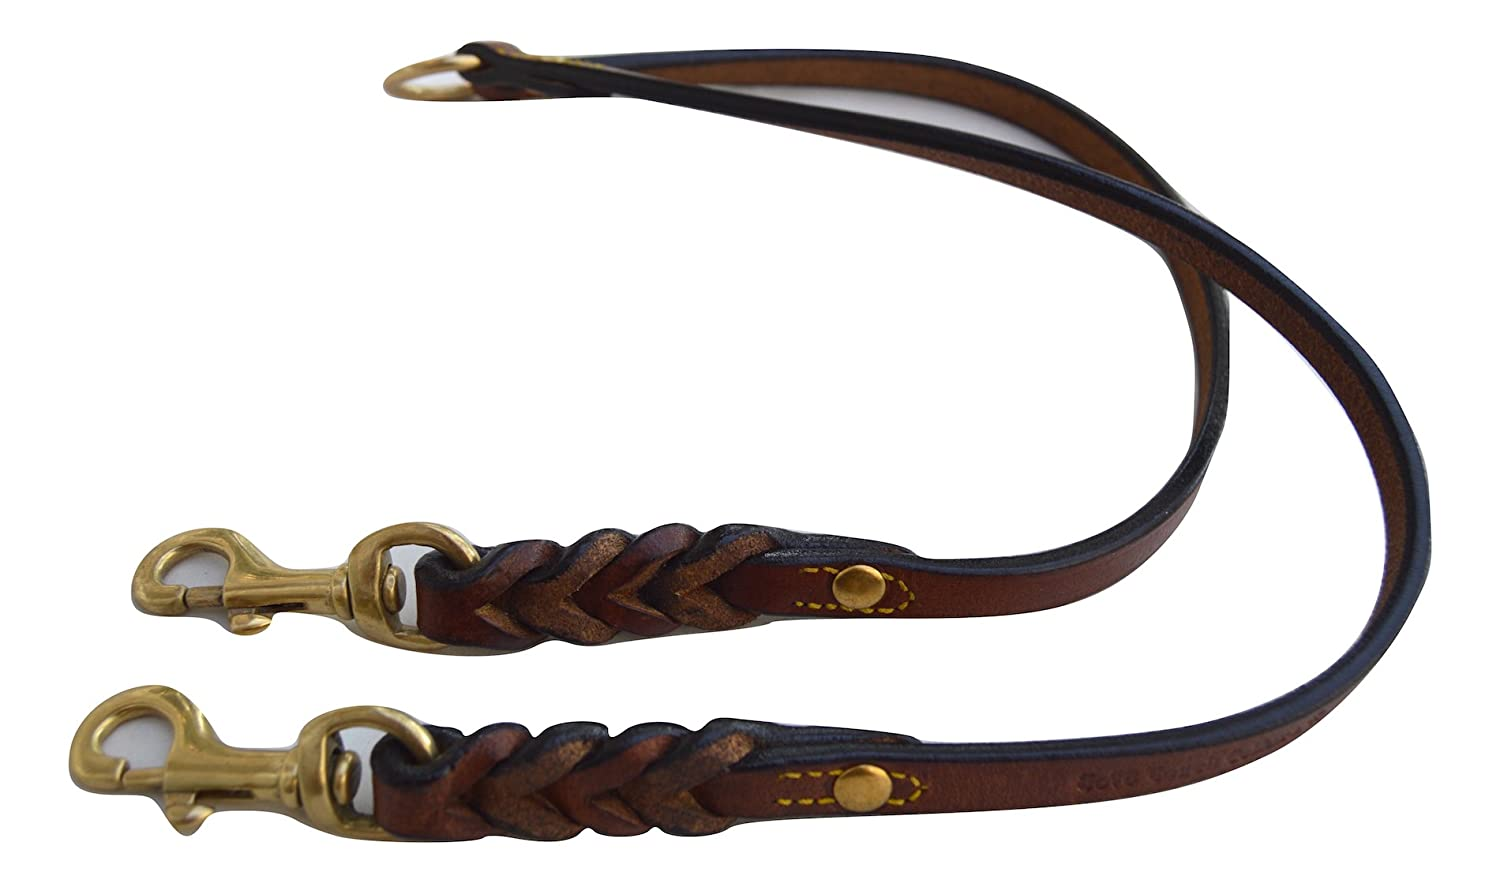 Leather Braided Coupler Dog Leash Soft Touch Collars for Walking Two Dogs